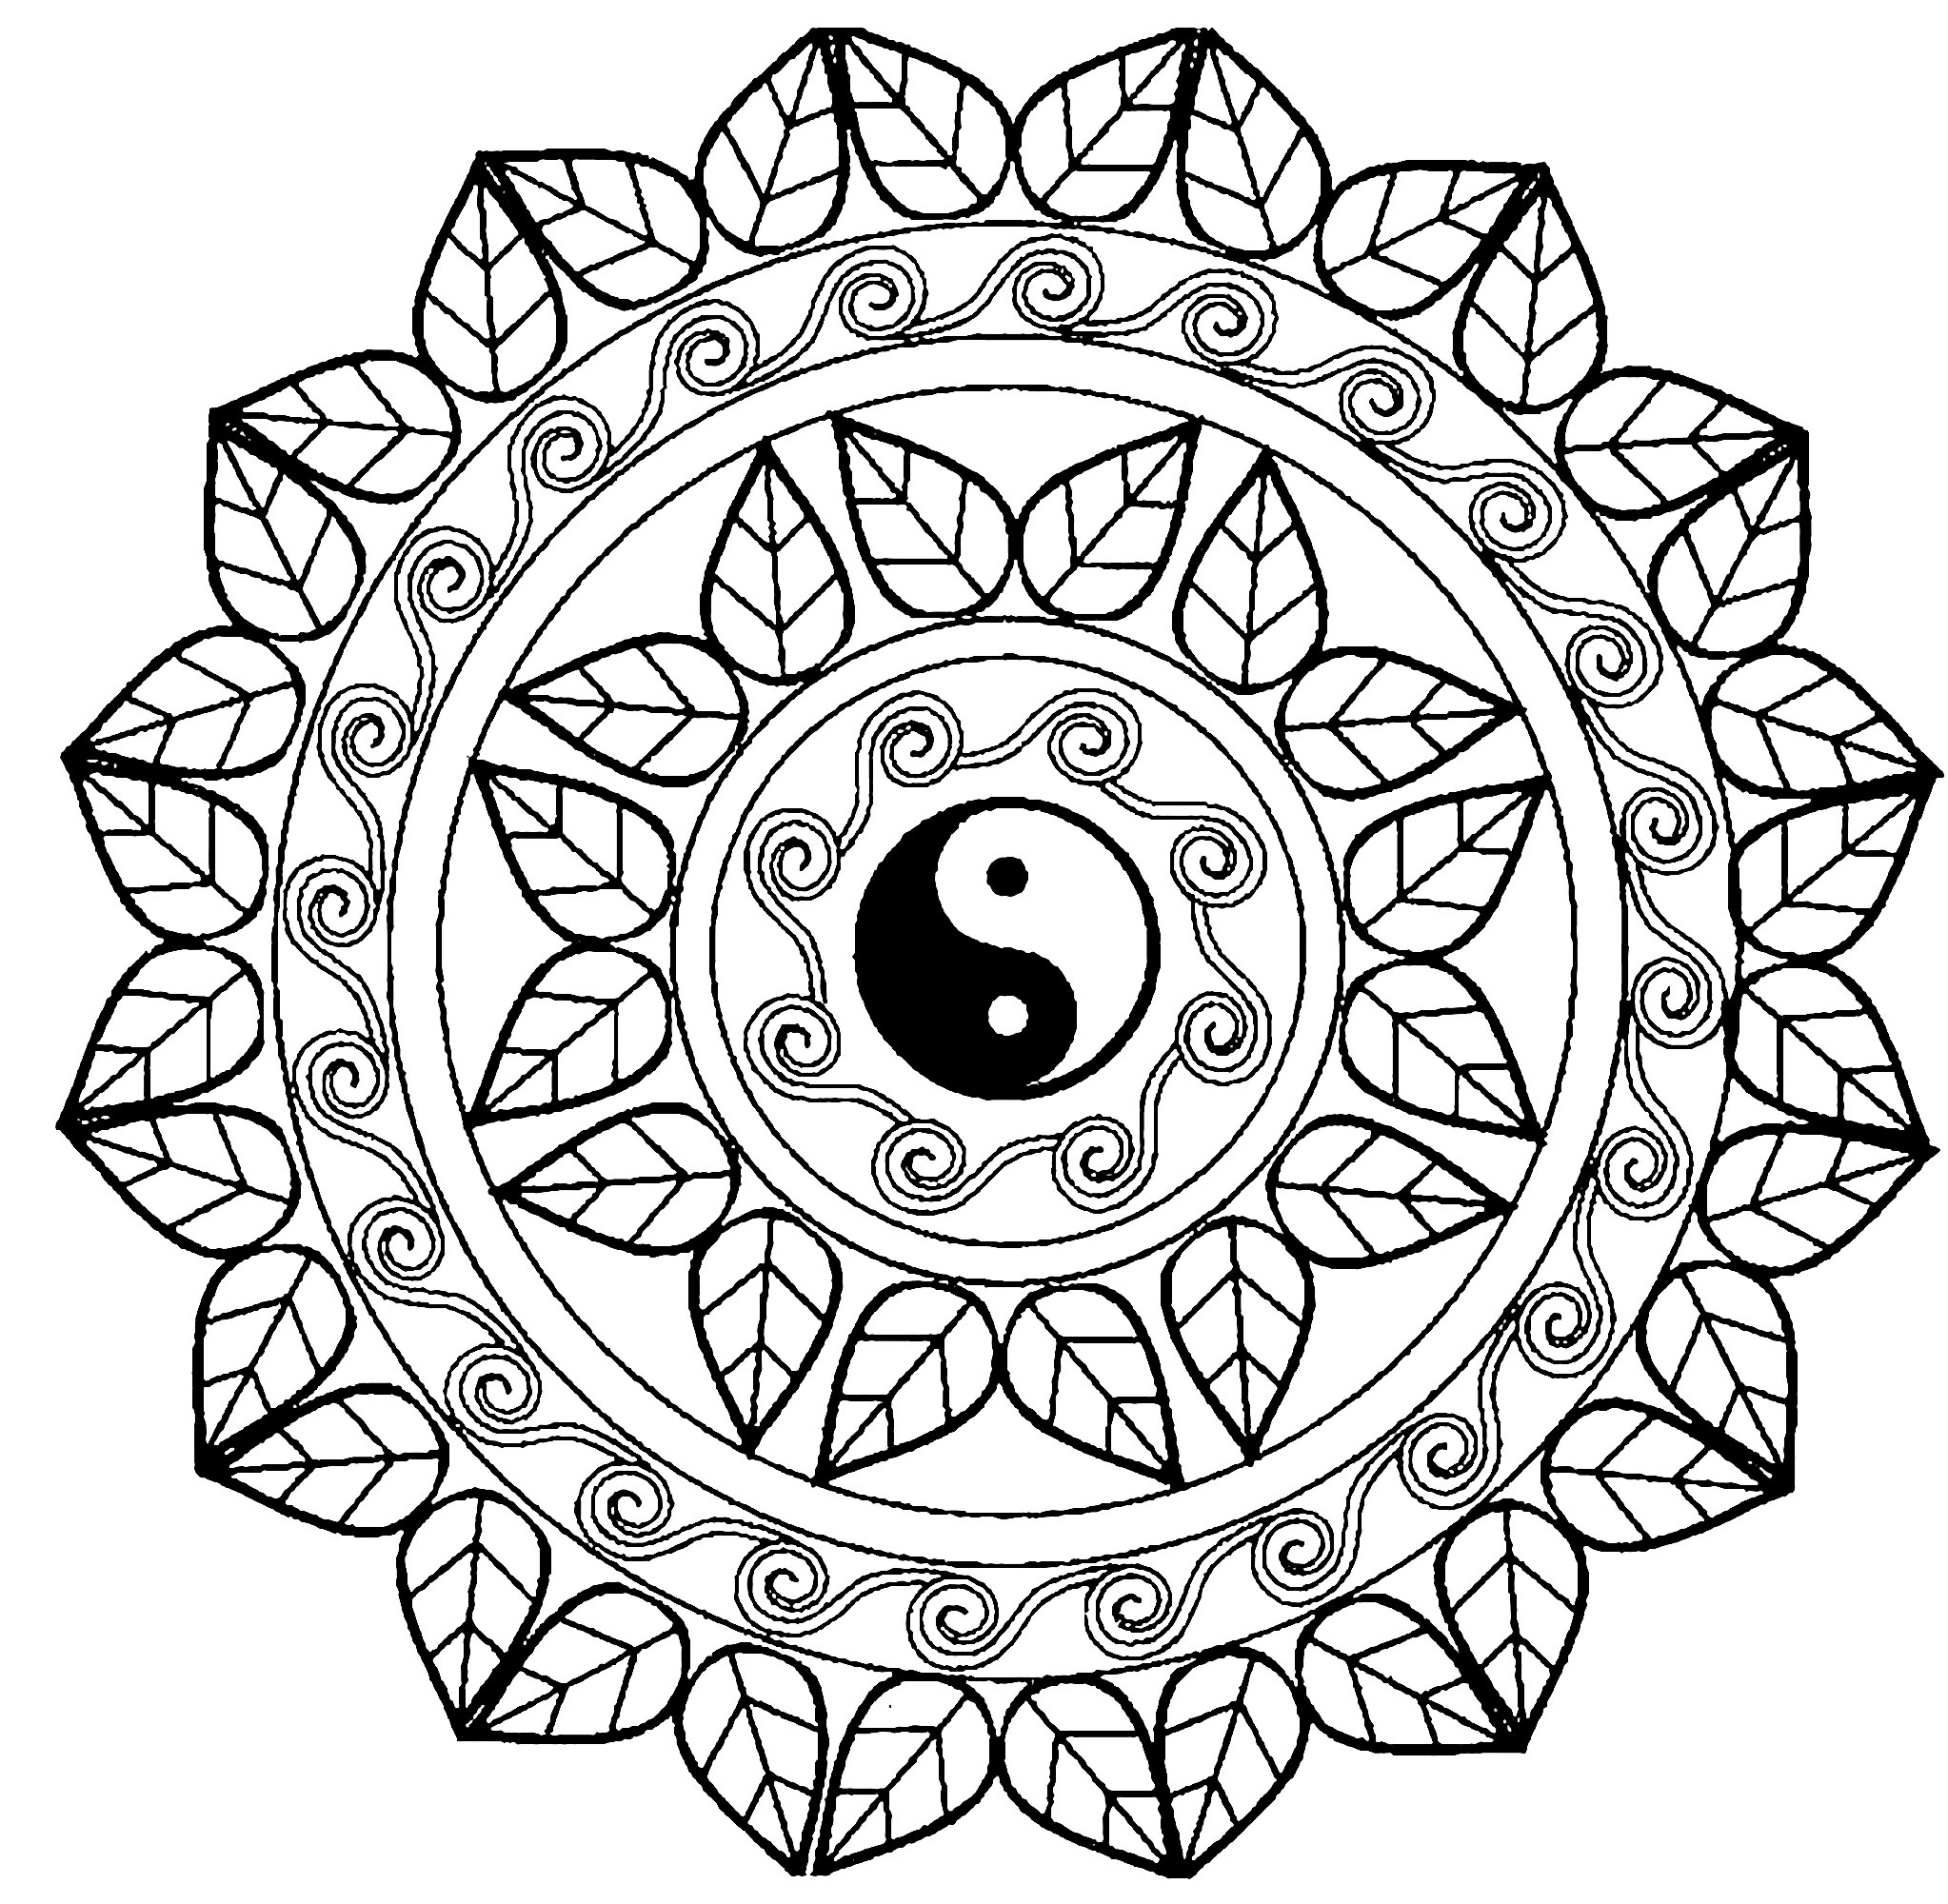 Mandala yin yang - M&alas Adult Coloring Pages